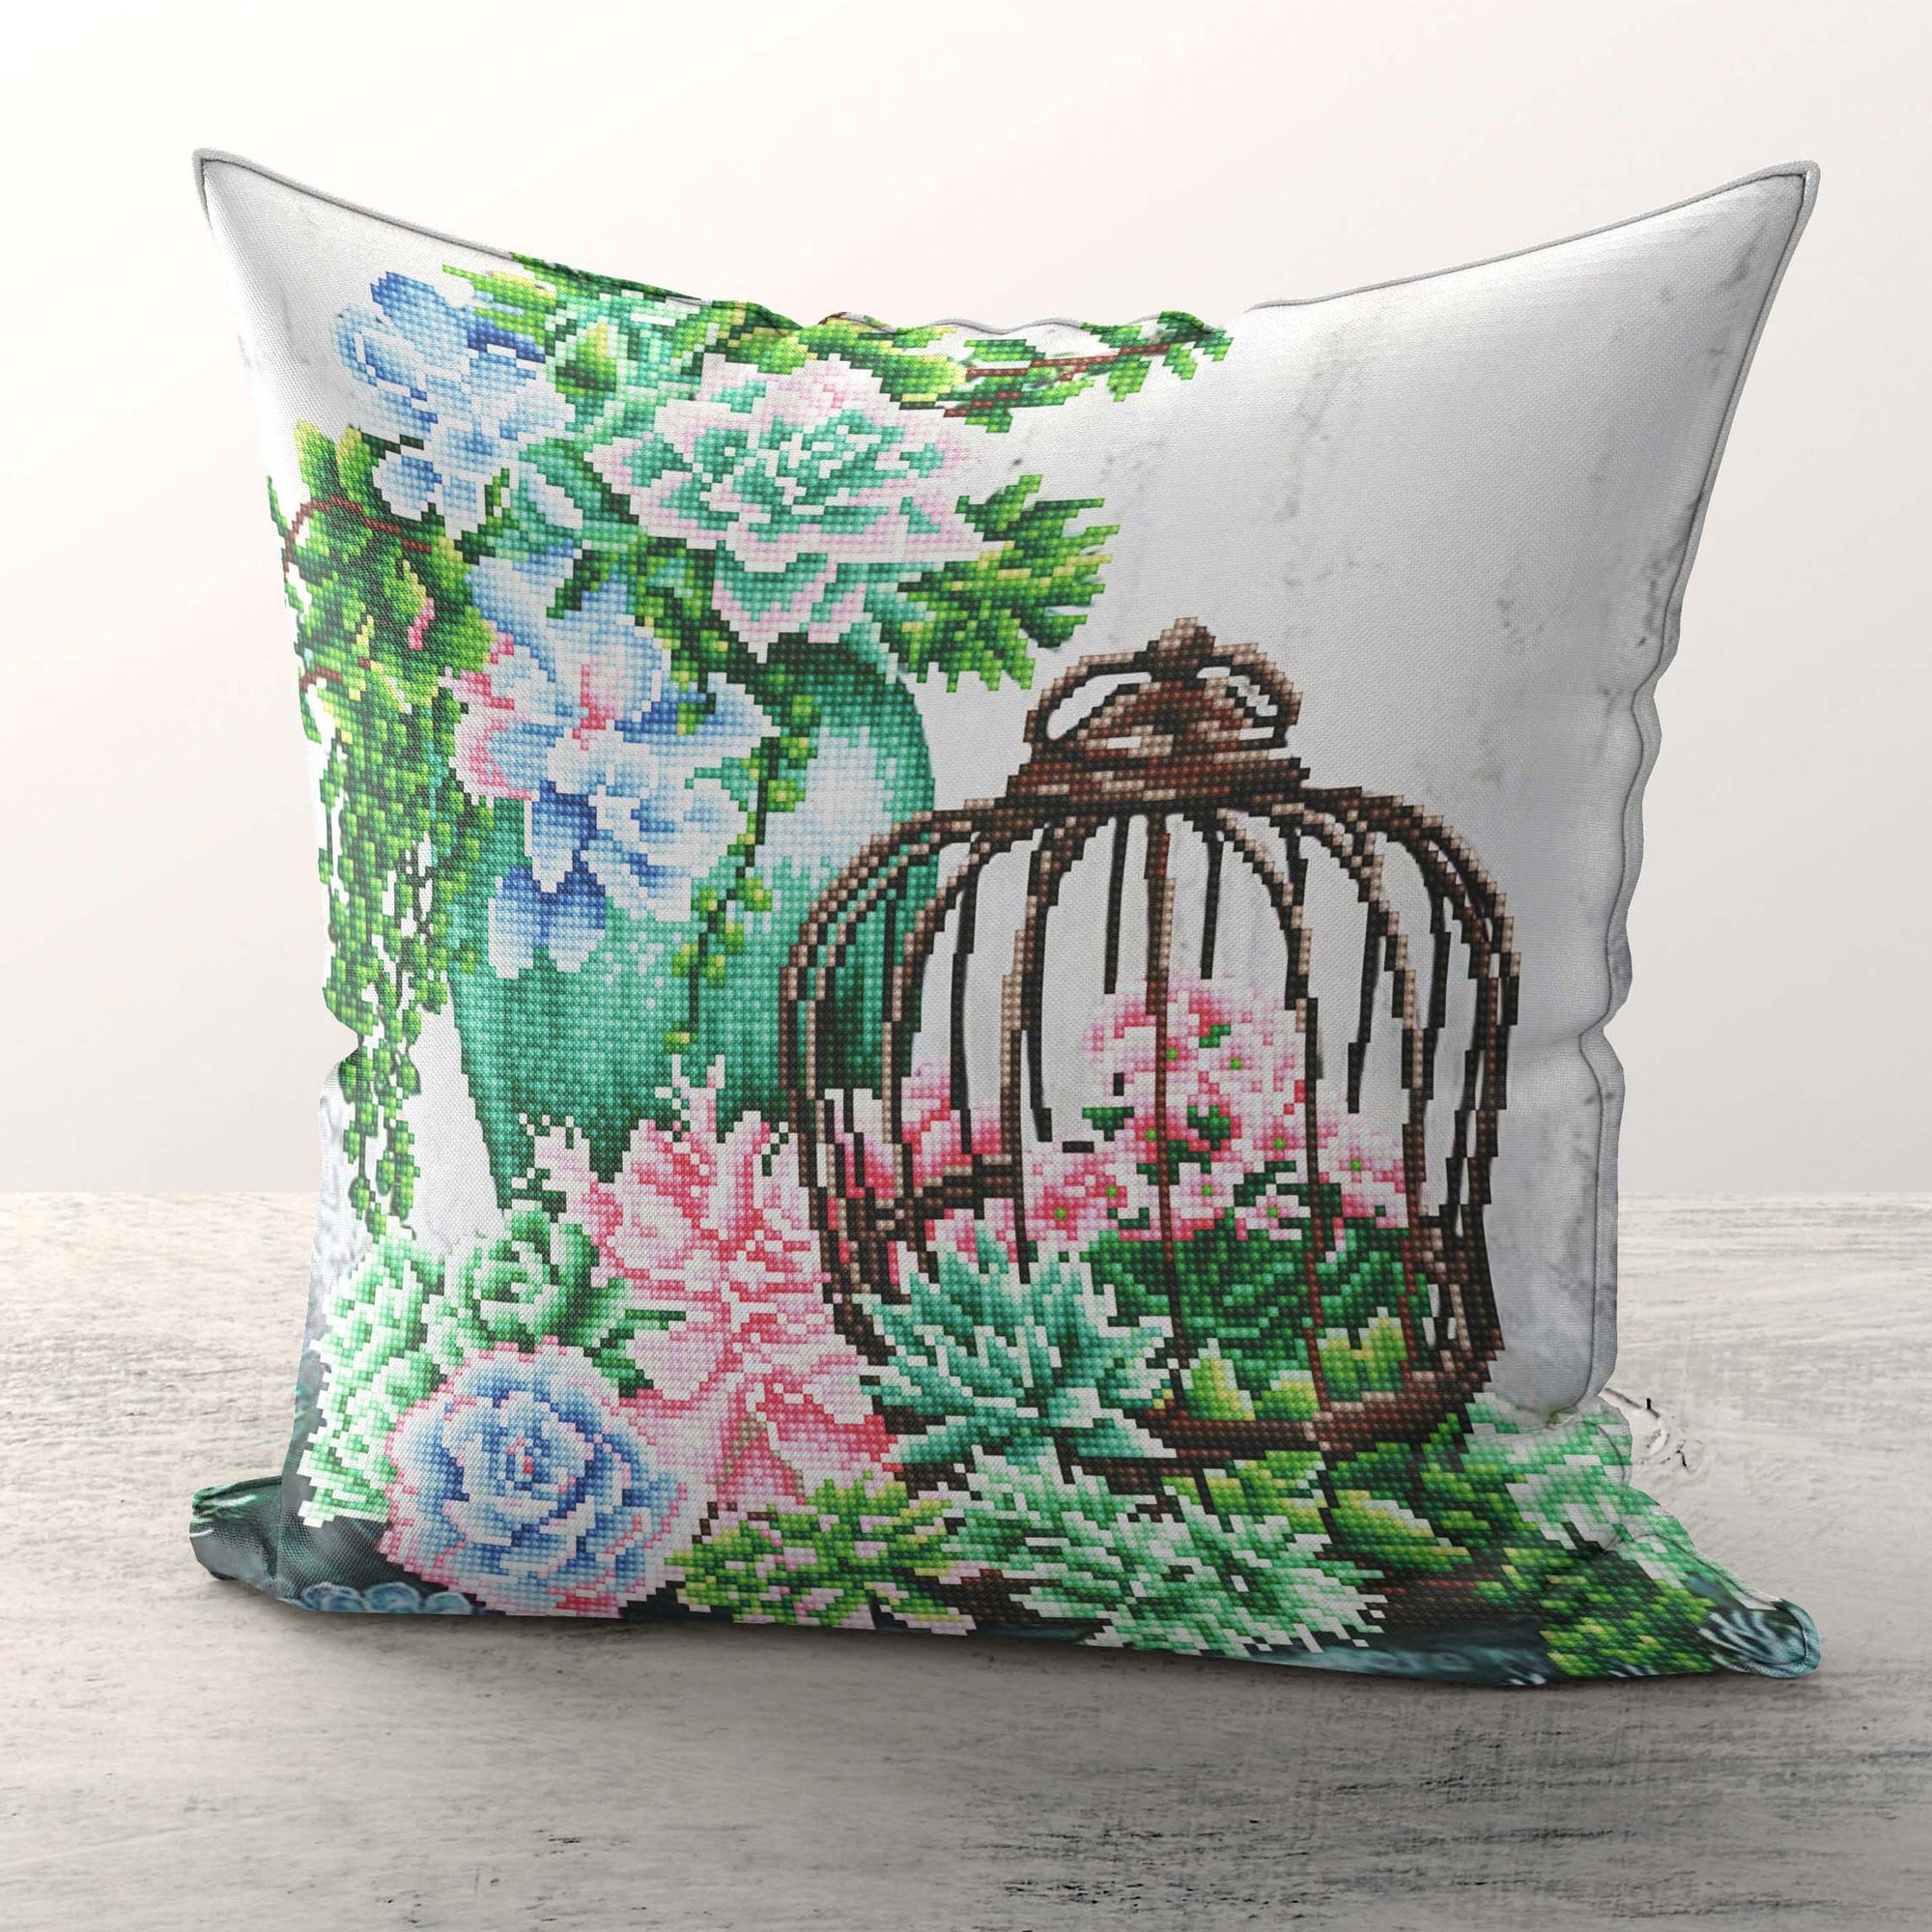 Scculent Garden Cushions Diamond Painting